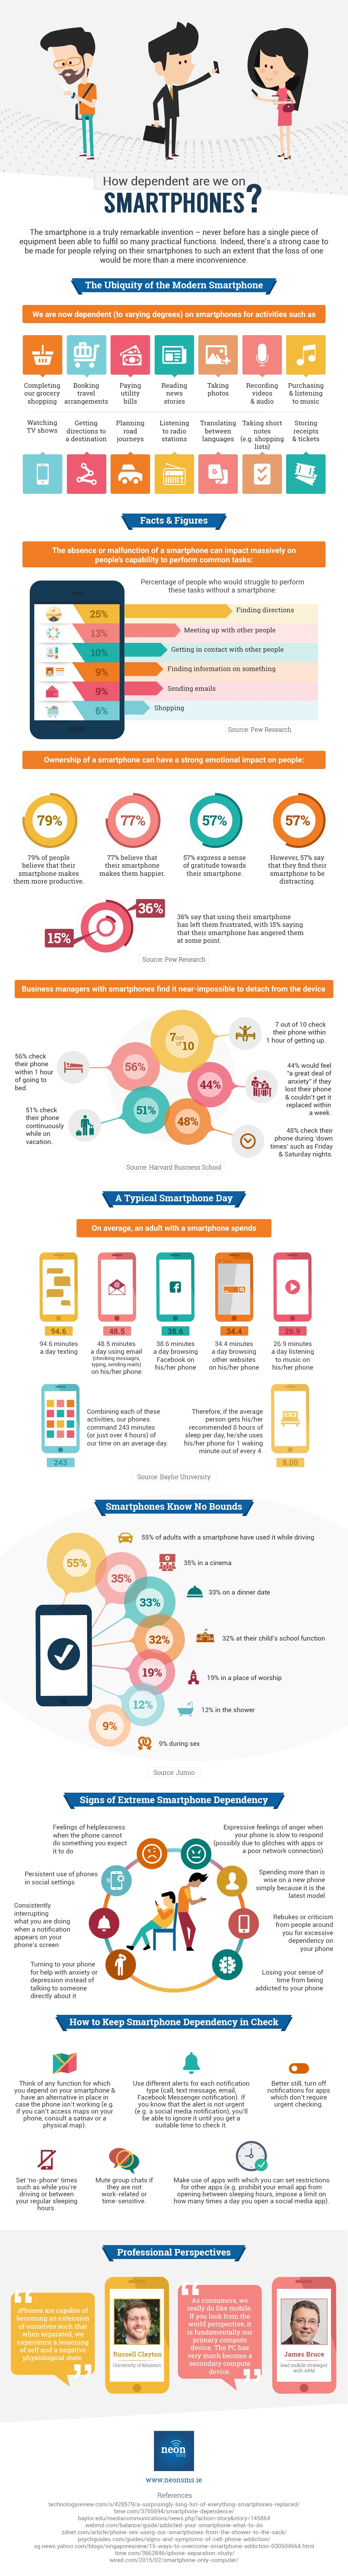 how-dependent-are-we-on-smartphones